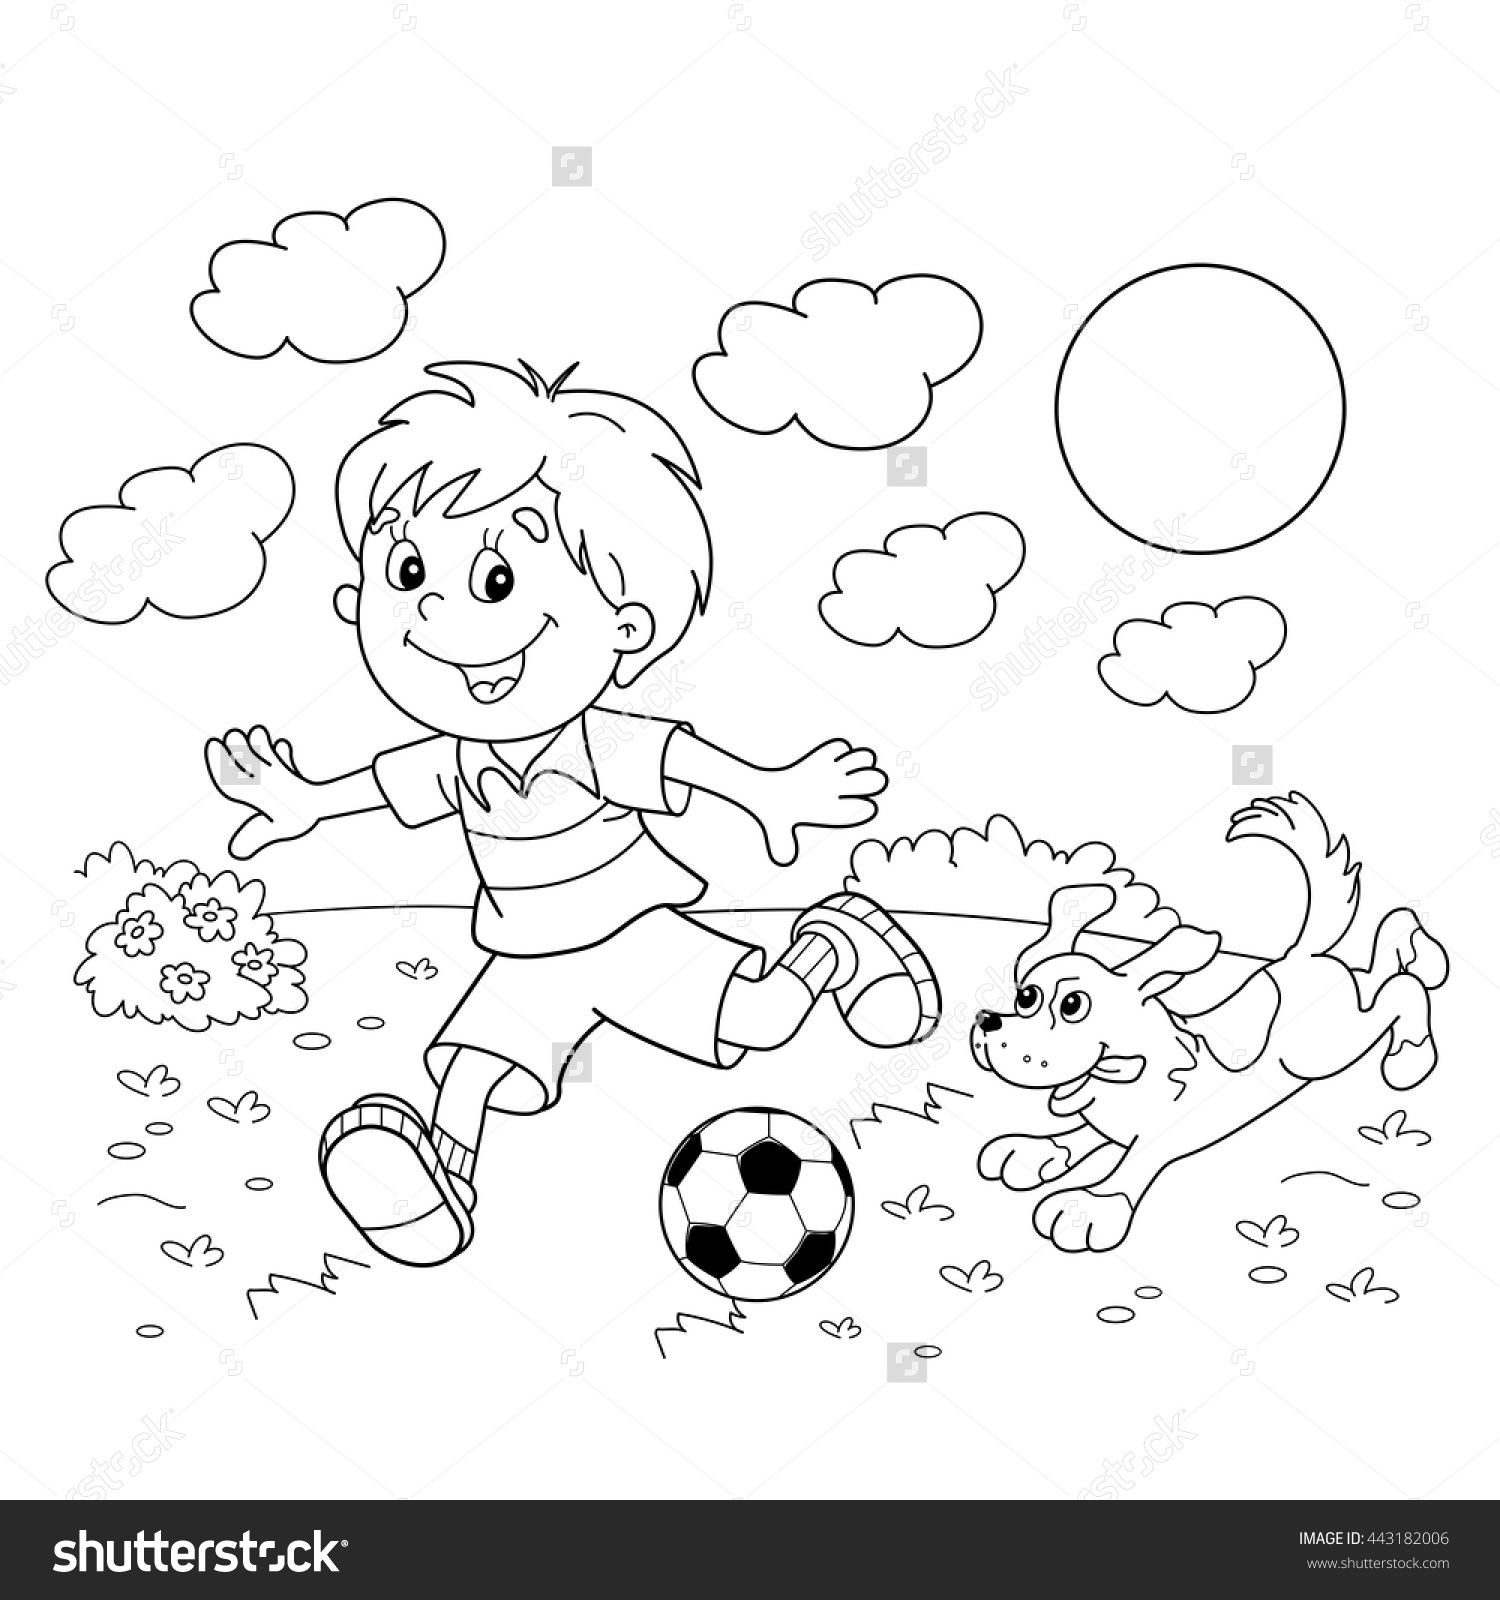 http image shutterstock com z stock vector coloring page outline